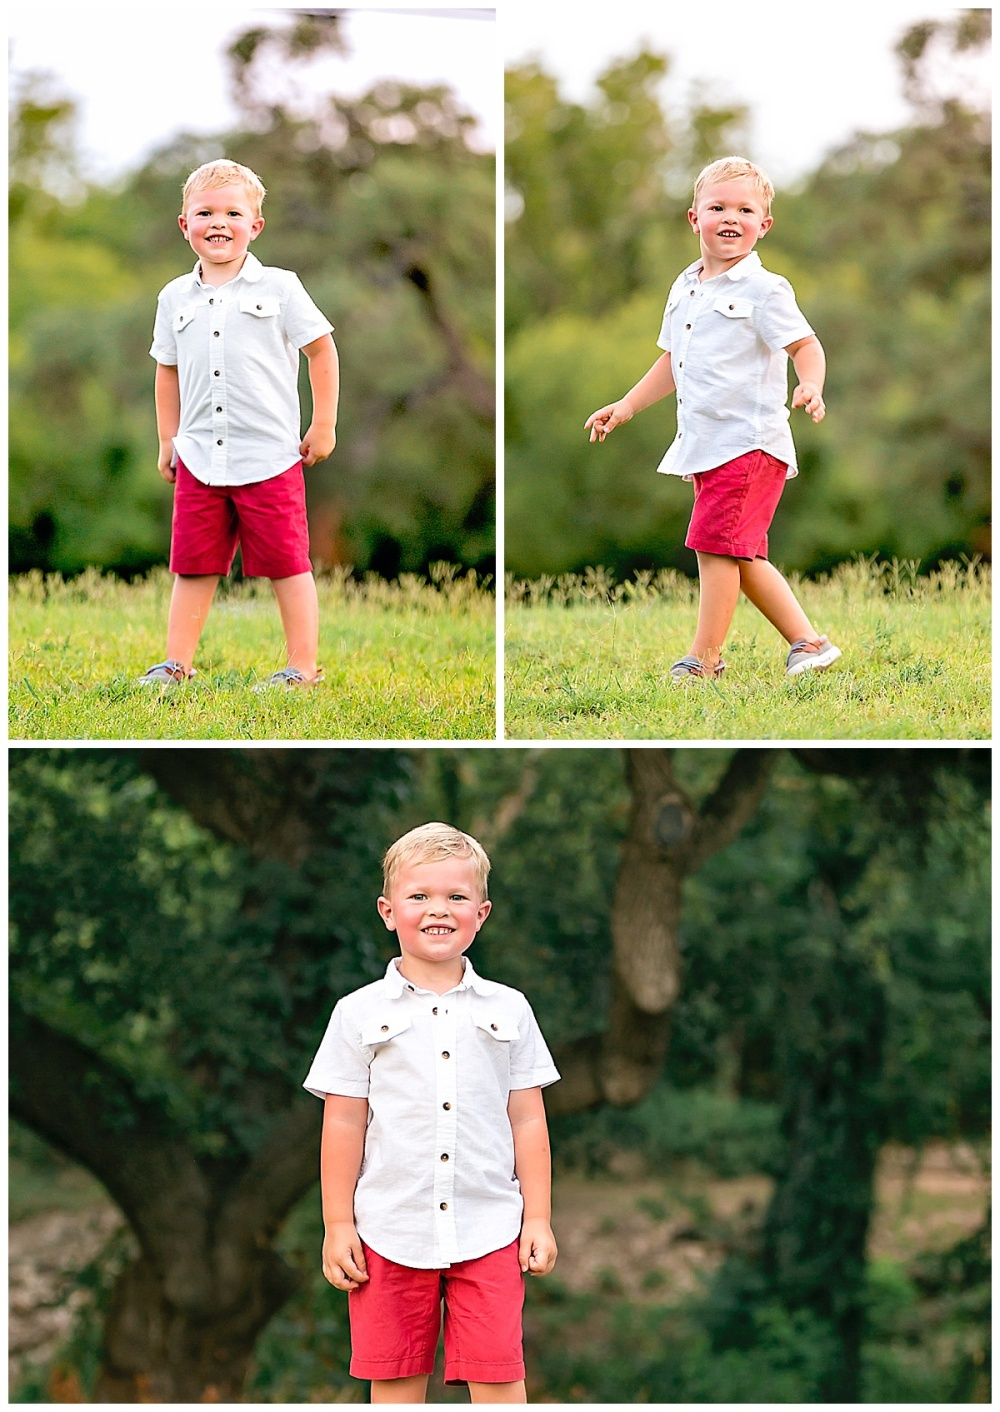 Carly-Barton-Photography-Family-Photos-Walnut-Springs-Park-Seguin-Texas-Pierdolla-Birthday_0010.jpg